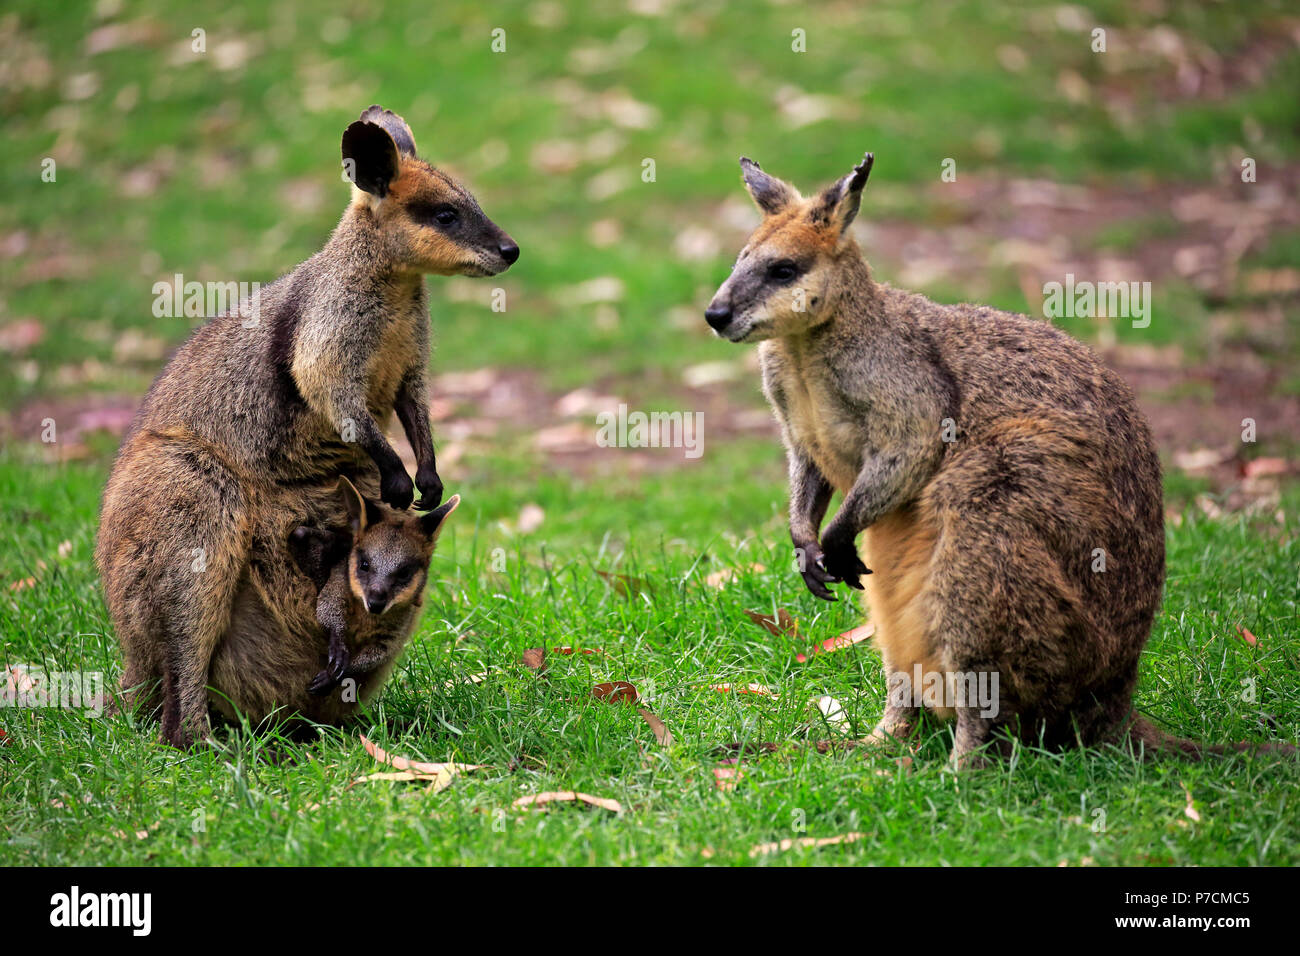 Agile Wallaby, family with Joey in pouch, male, female, Cuddly Creek, South Australia, Australia, (Macropus agilis) - Stock Image